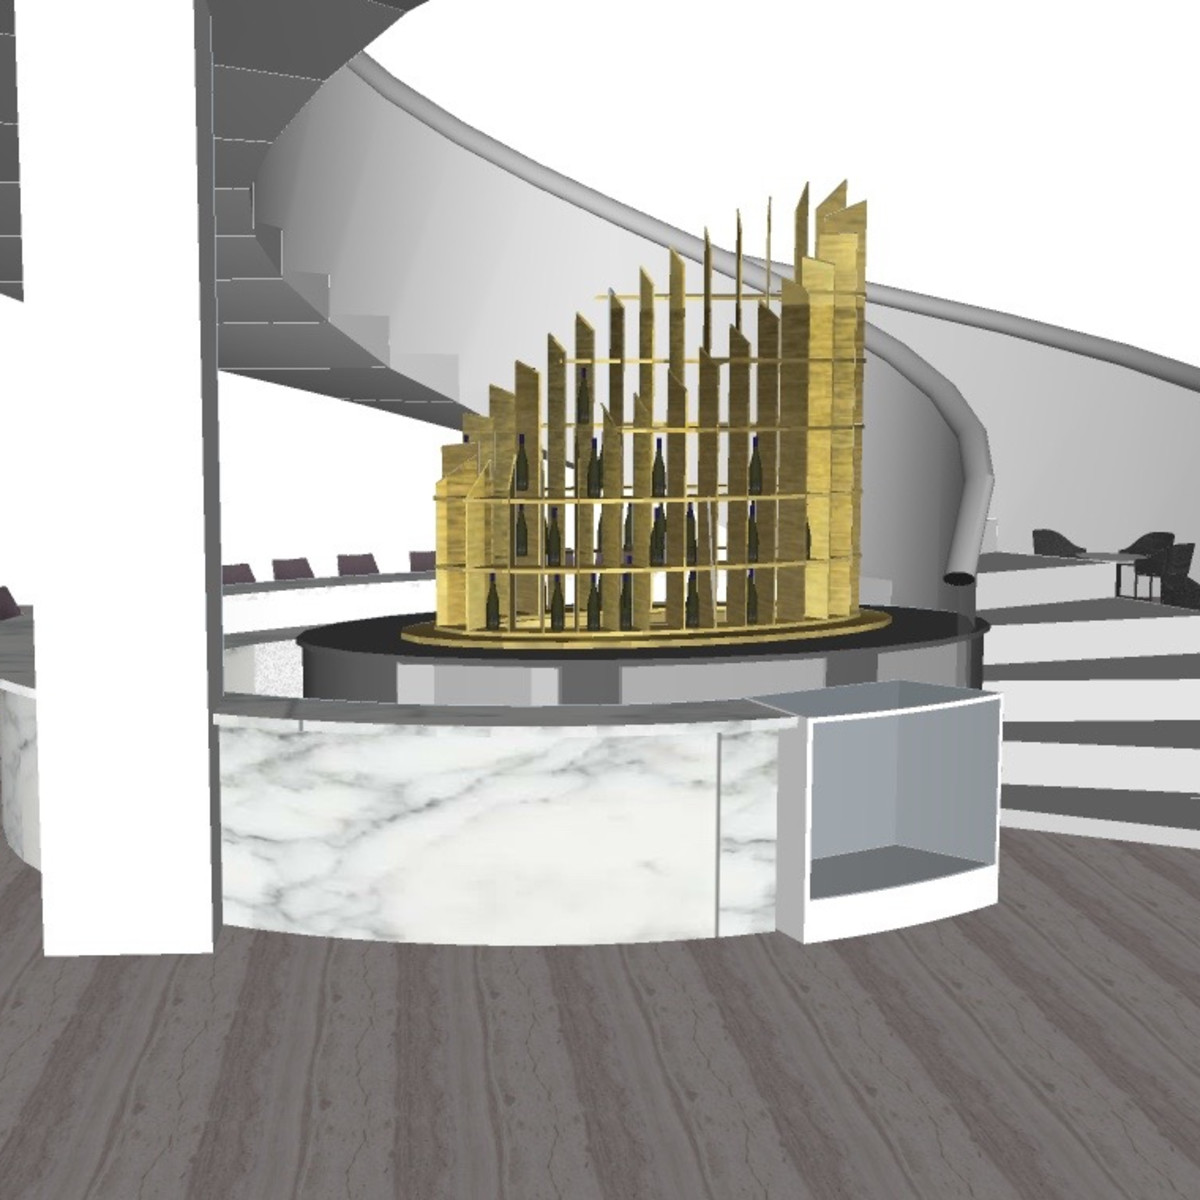 51Fifteen Satellite bar rendering